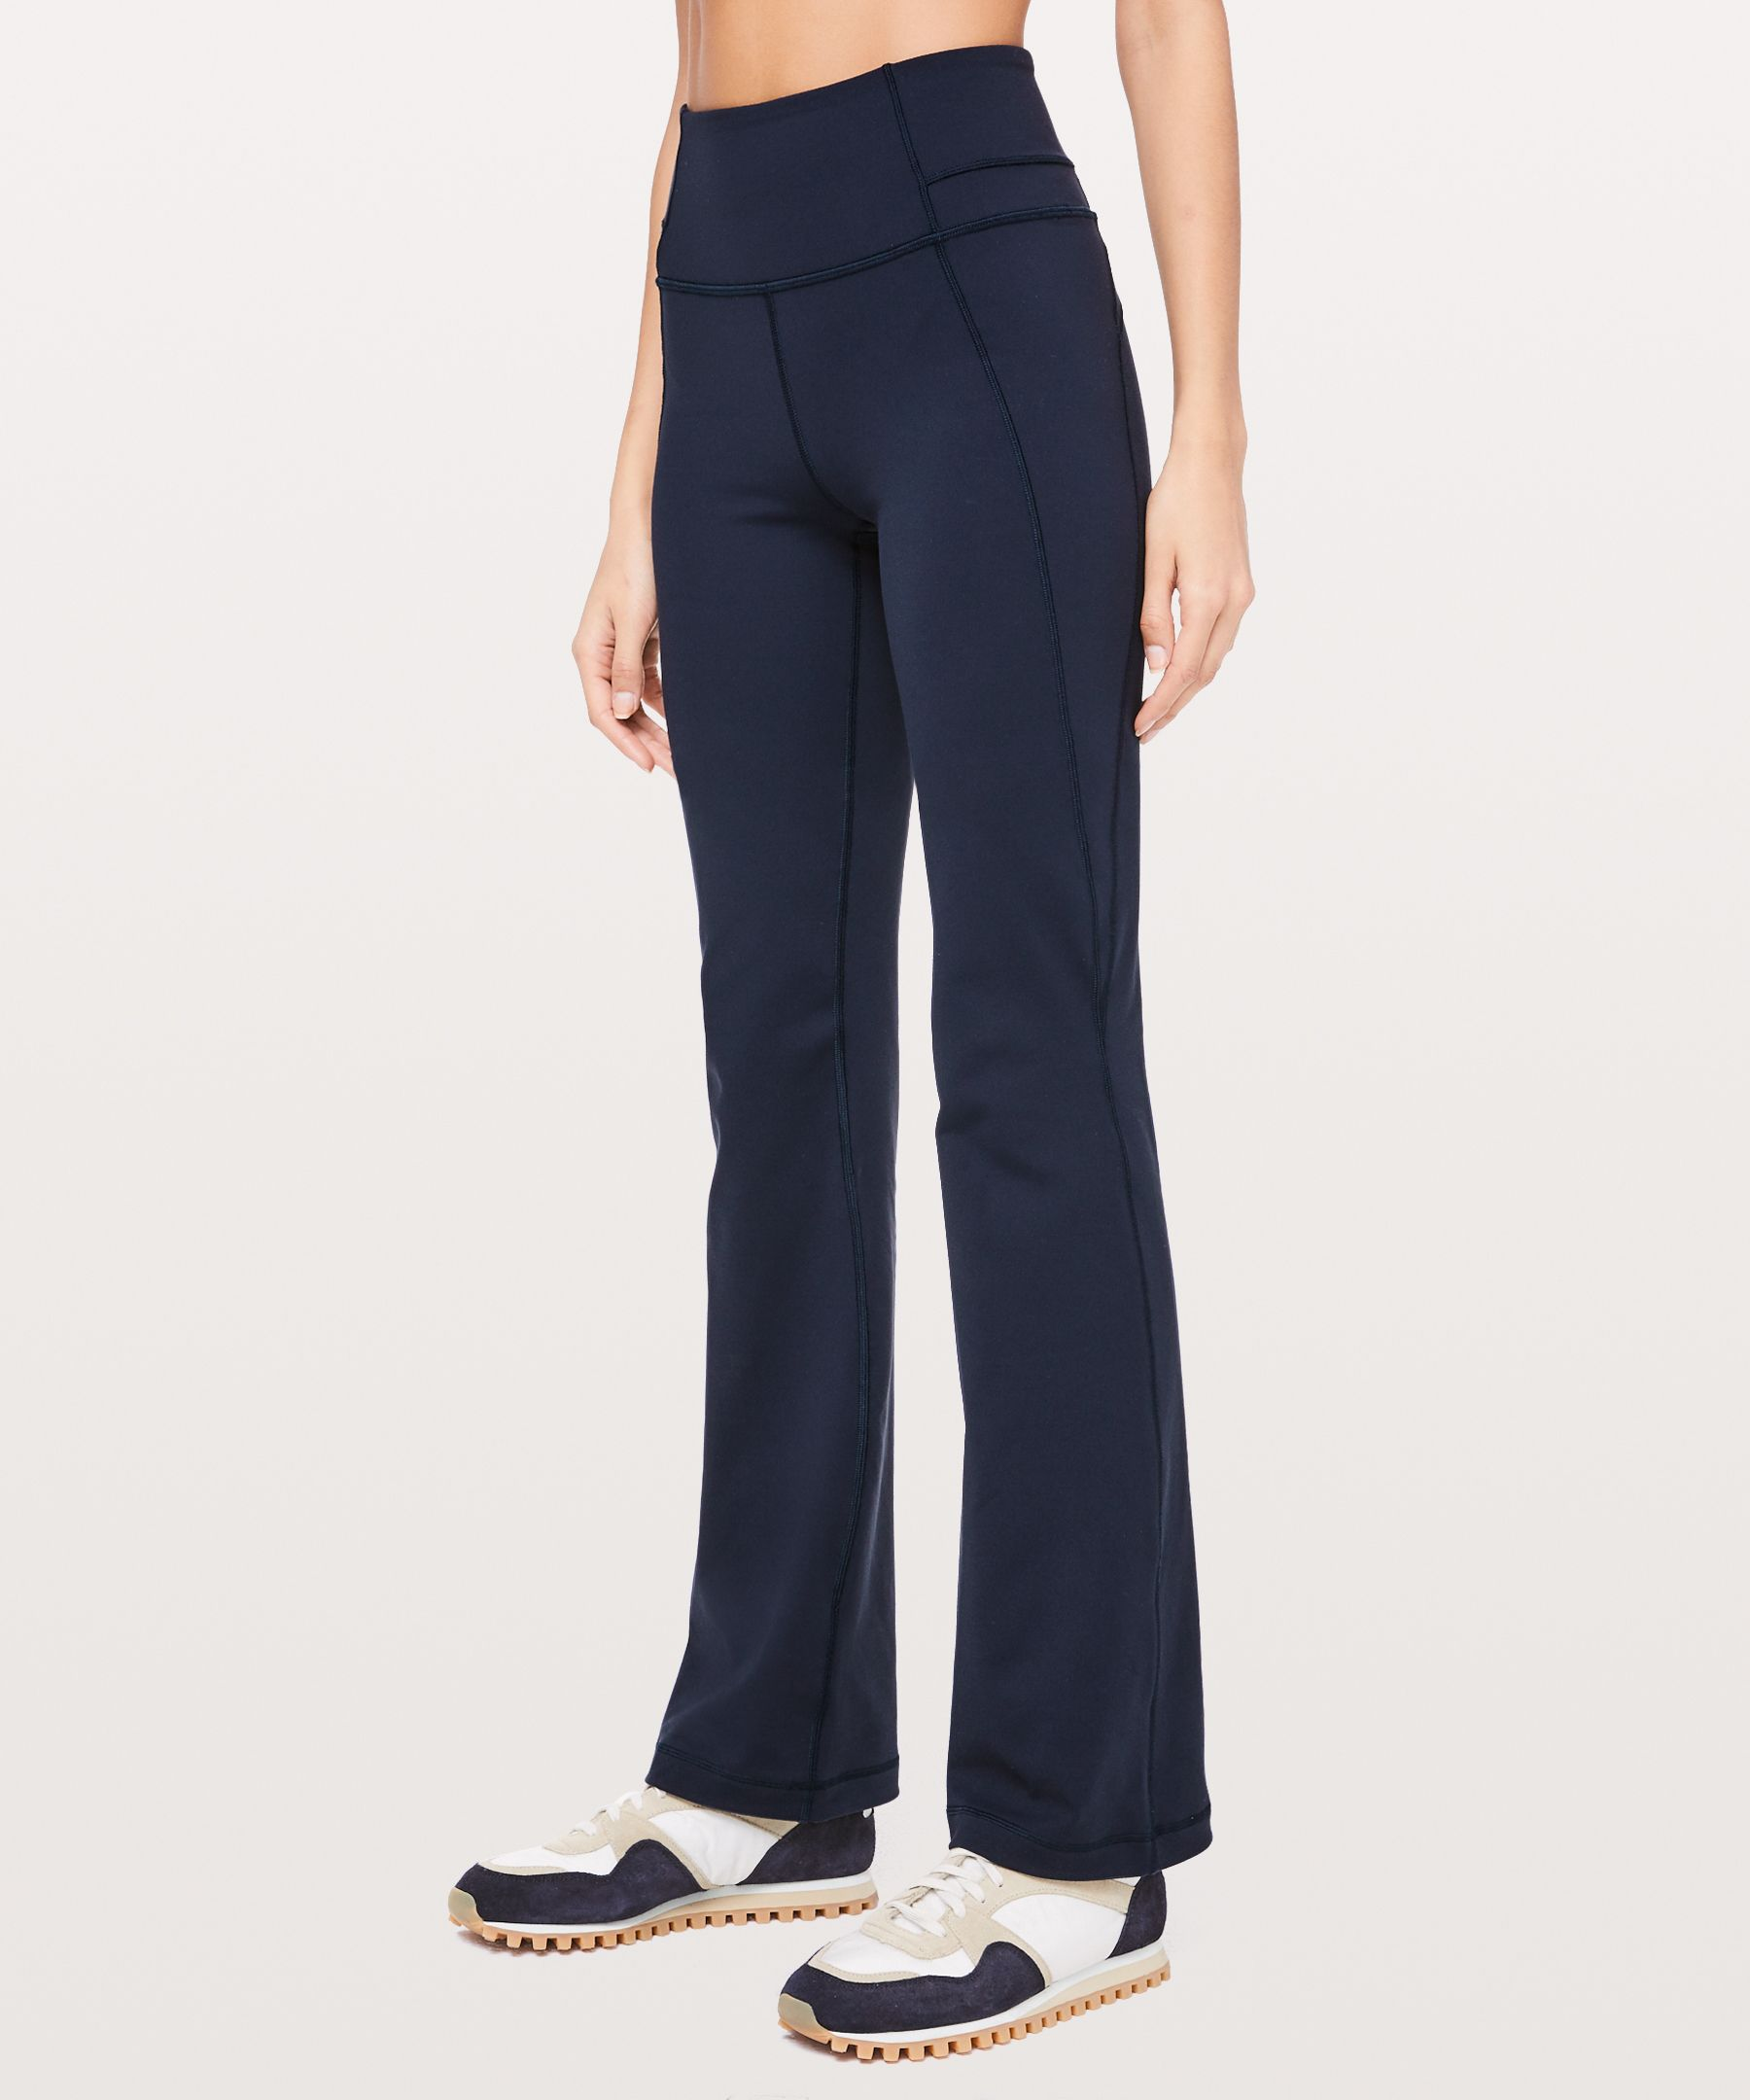 bed531b692494e Groove Pant Bootcut 32